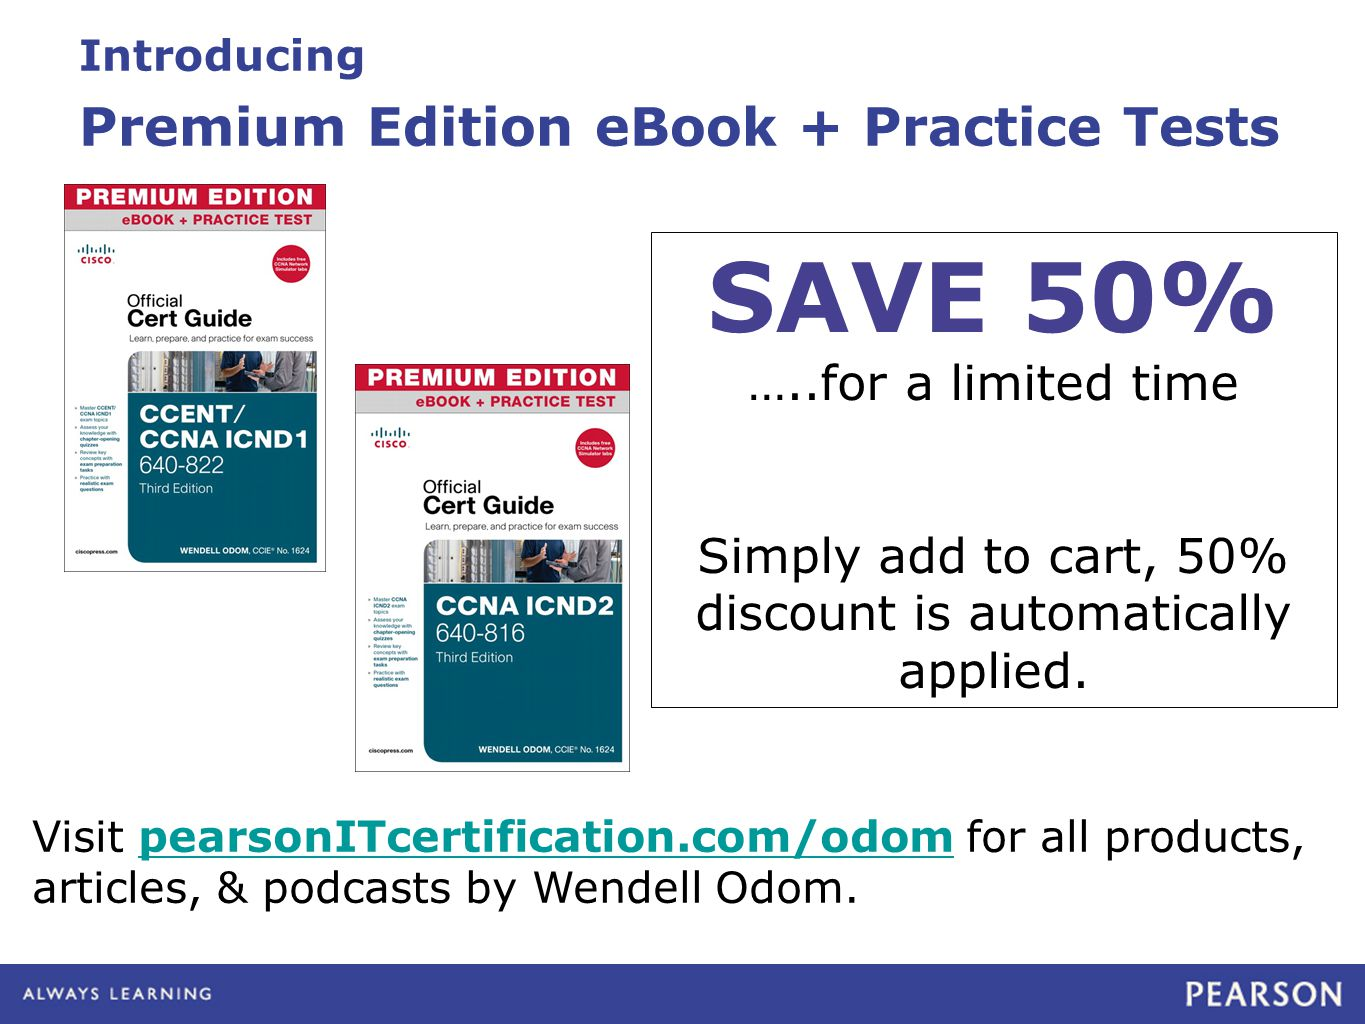 Introducing Premium Edition eBook + Practice Tests Visit pearsonITcertification.com/odom for all products, articles, & podcasts by Wendell Odom.pearsonITcertification.com/odom SAVE 50% …..for a limited time Simply add to cart, 50% discount is automatically applied.